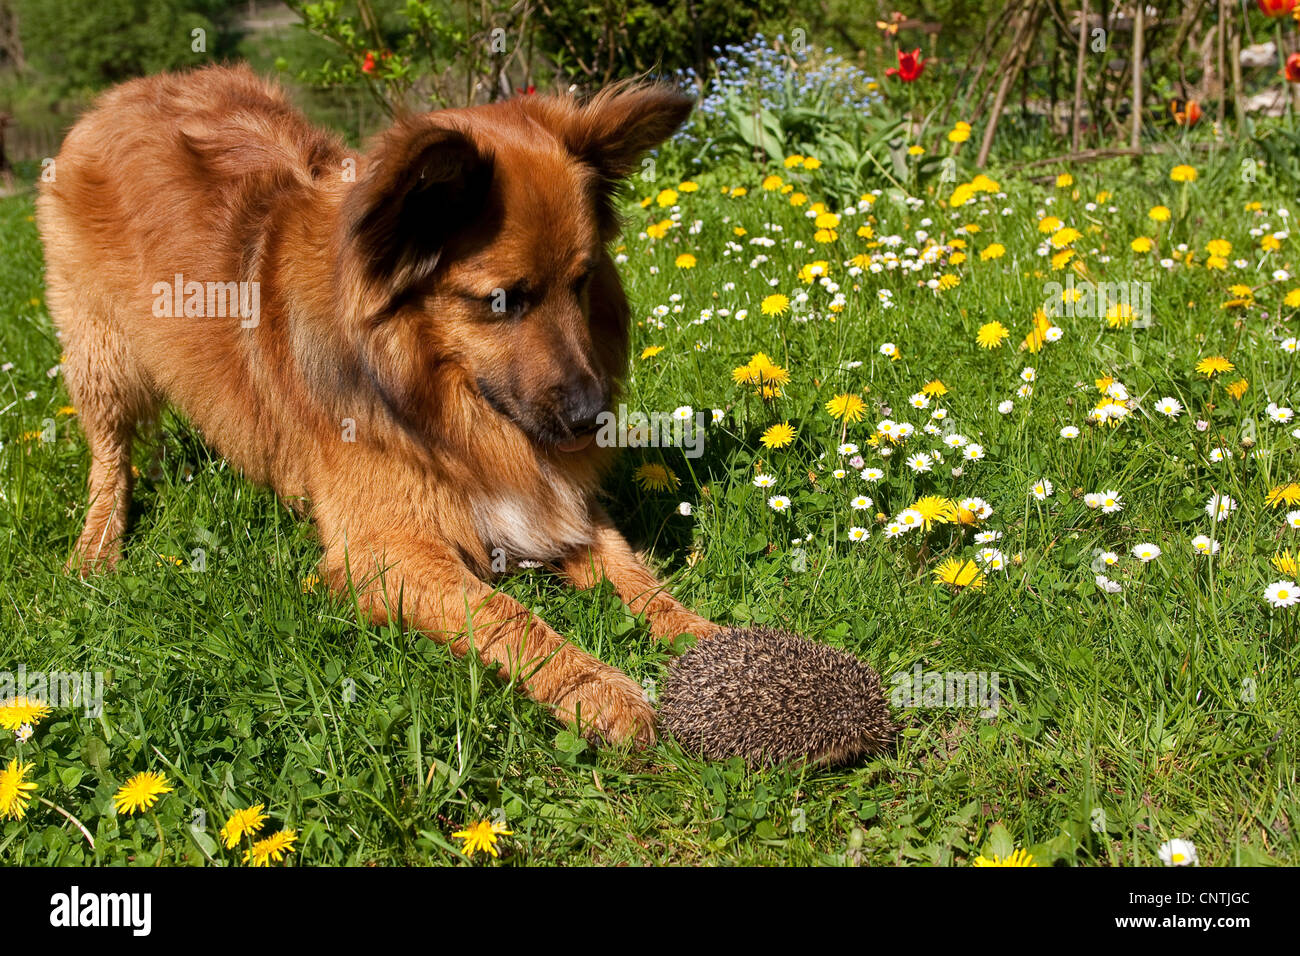 Western hedgehog, European hedgehog (Erinaceus europaeus), dog and hedgehog meeting in a meadow, Germany - Stock Image